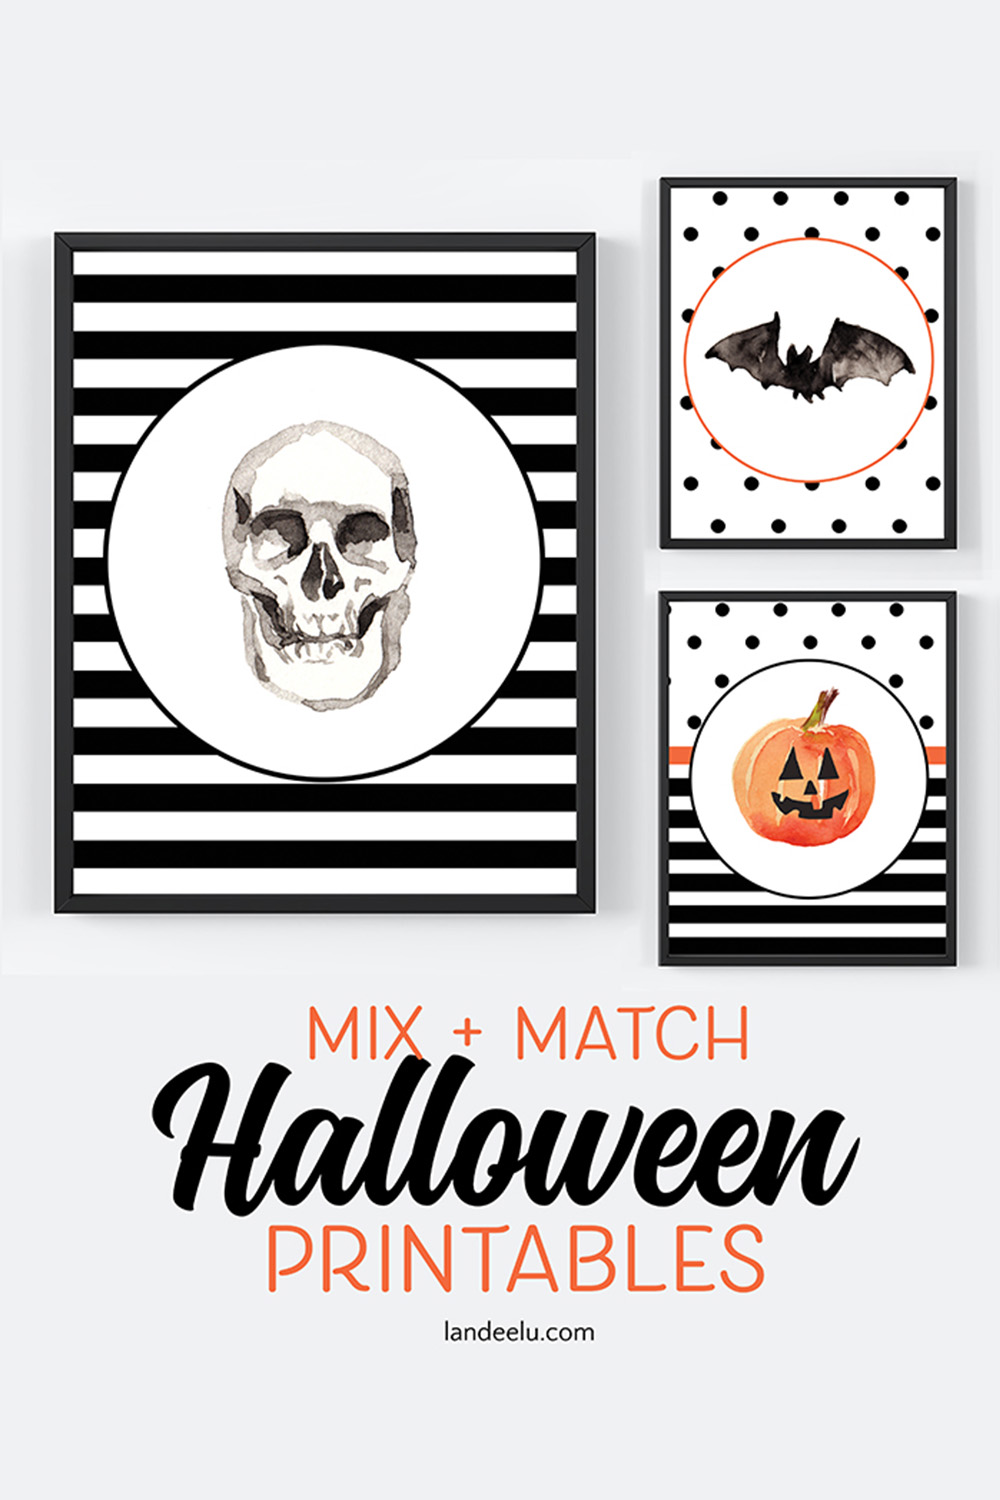 Darling mix and match Halloween printables available in many different sizes! #halloweendecor #halloween #halloweenprints #halloweenprintables